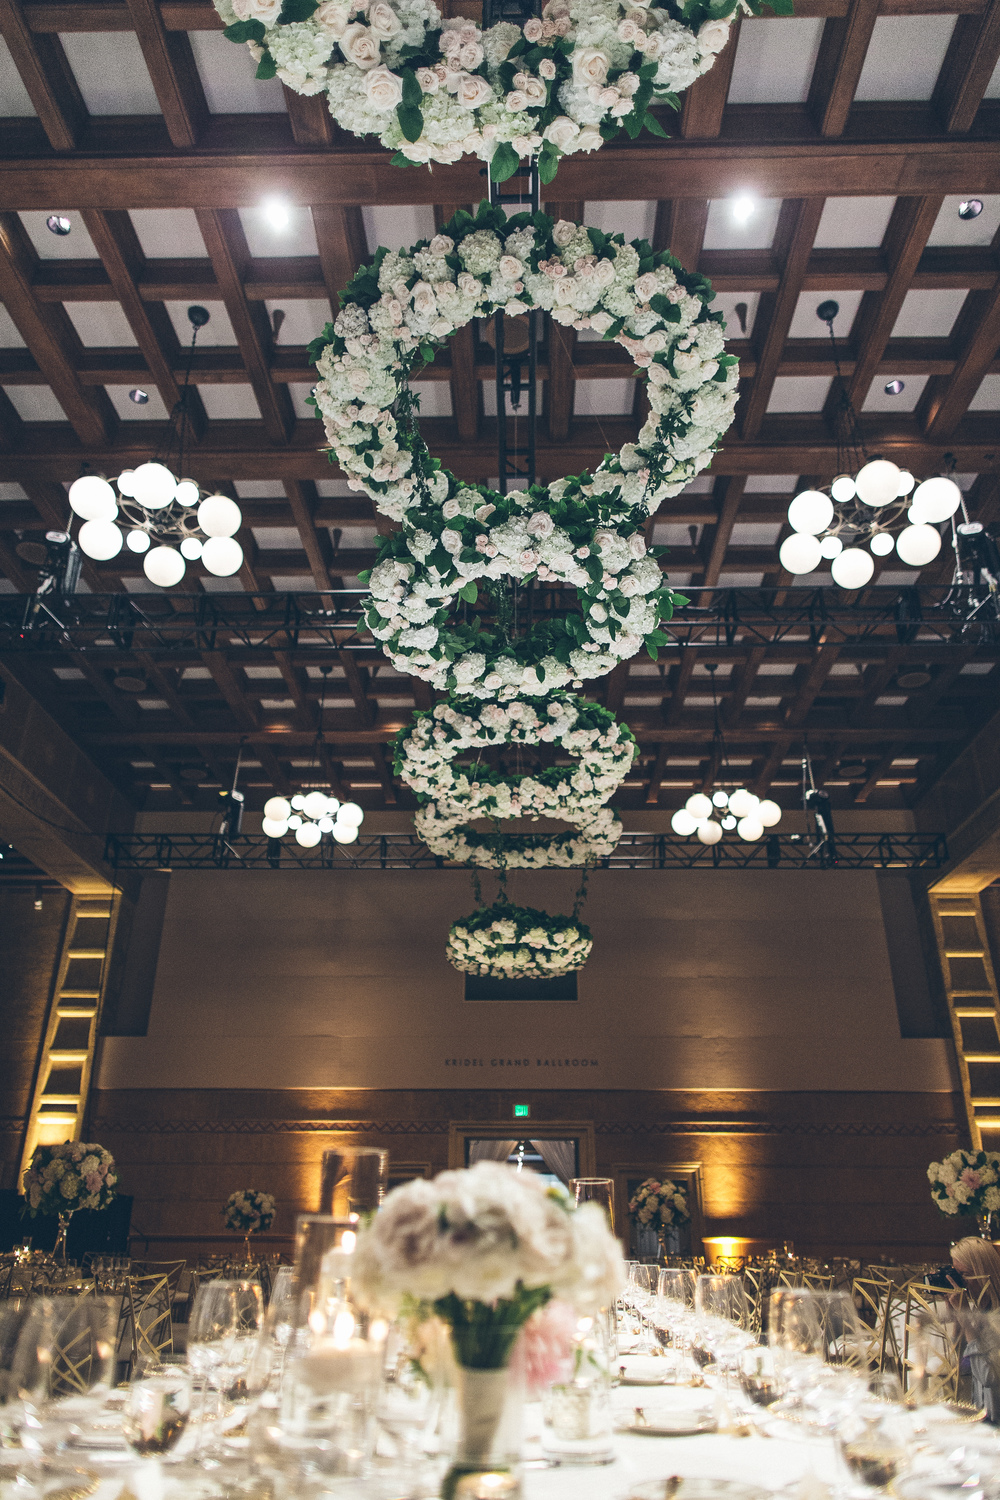 Bridalbliss.com | Portland Wedding | Oregon Event Planning and Design | Ben Pigao Photography | Zest Floral